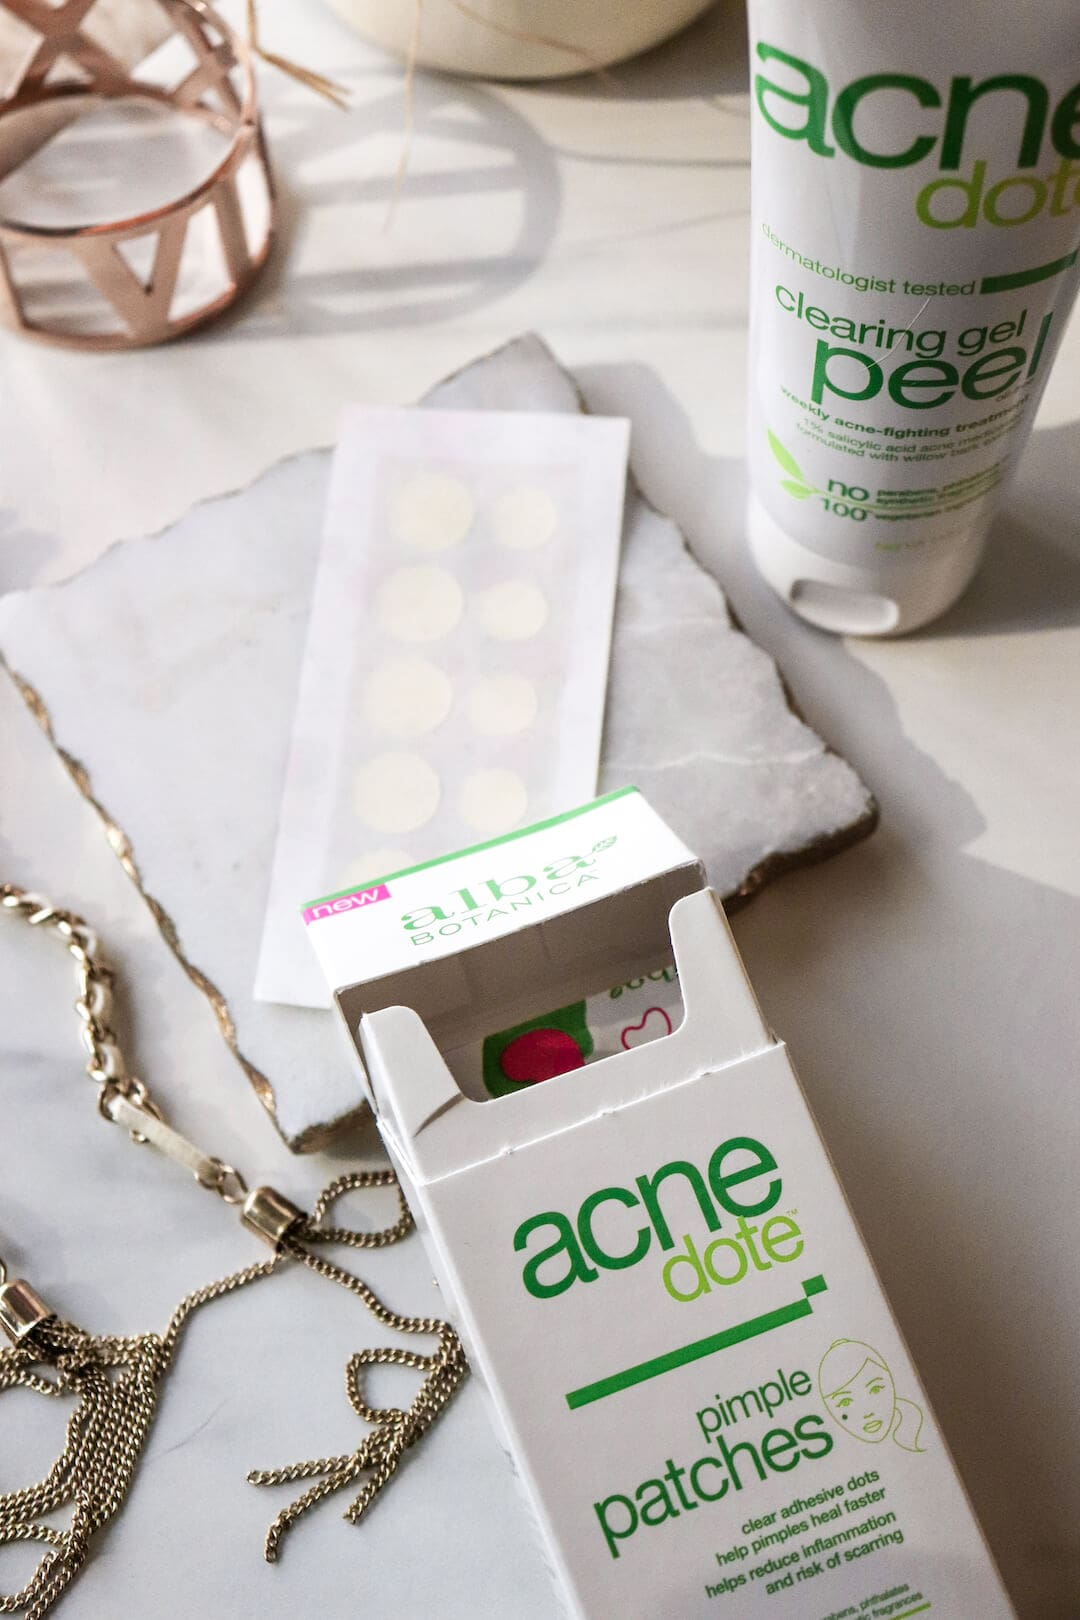 alba-botanica-acnedote-pimple-patches-review | Vancouver